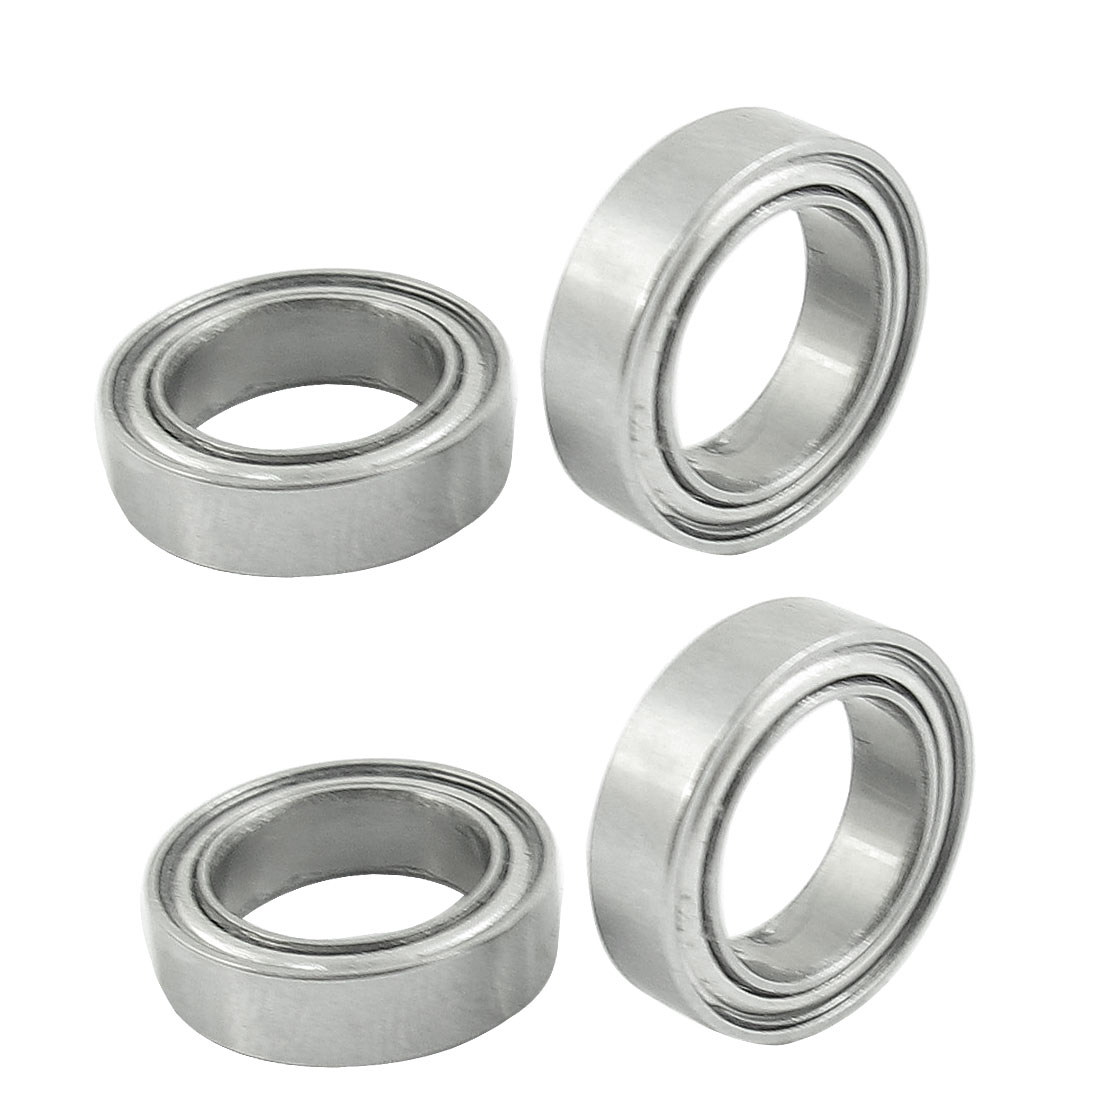 4pcs 15mm x 10mm x 4mm Double Shielded Ball Bearing for RC Model Car